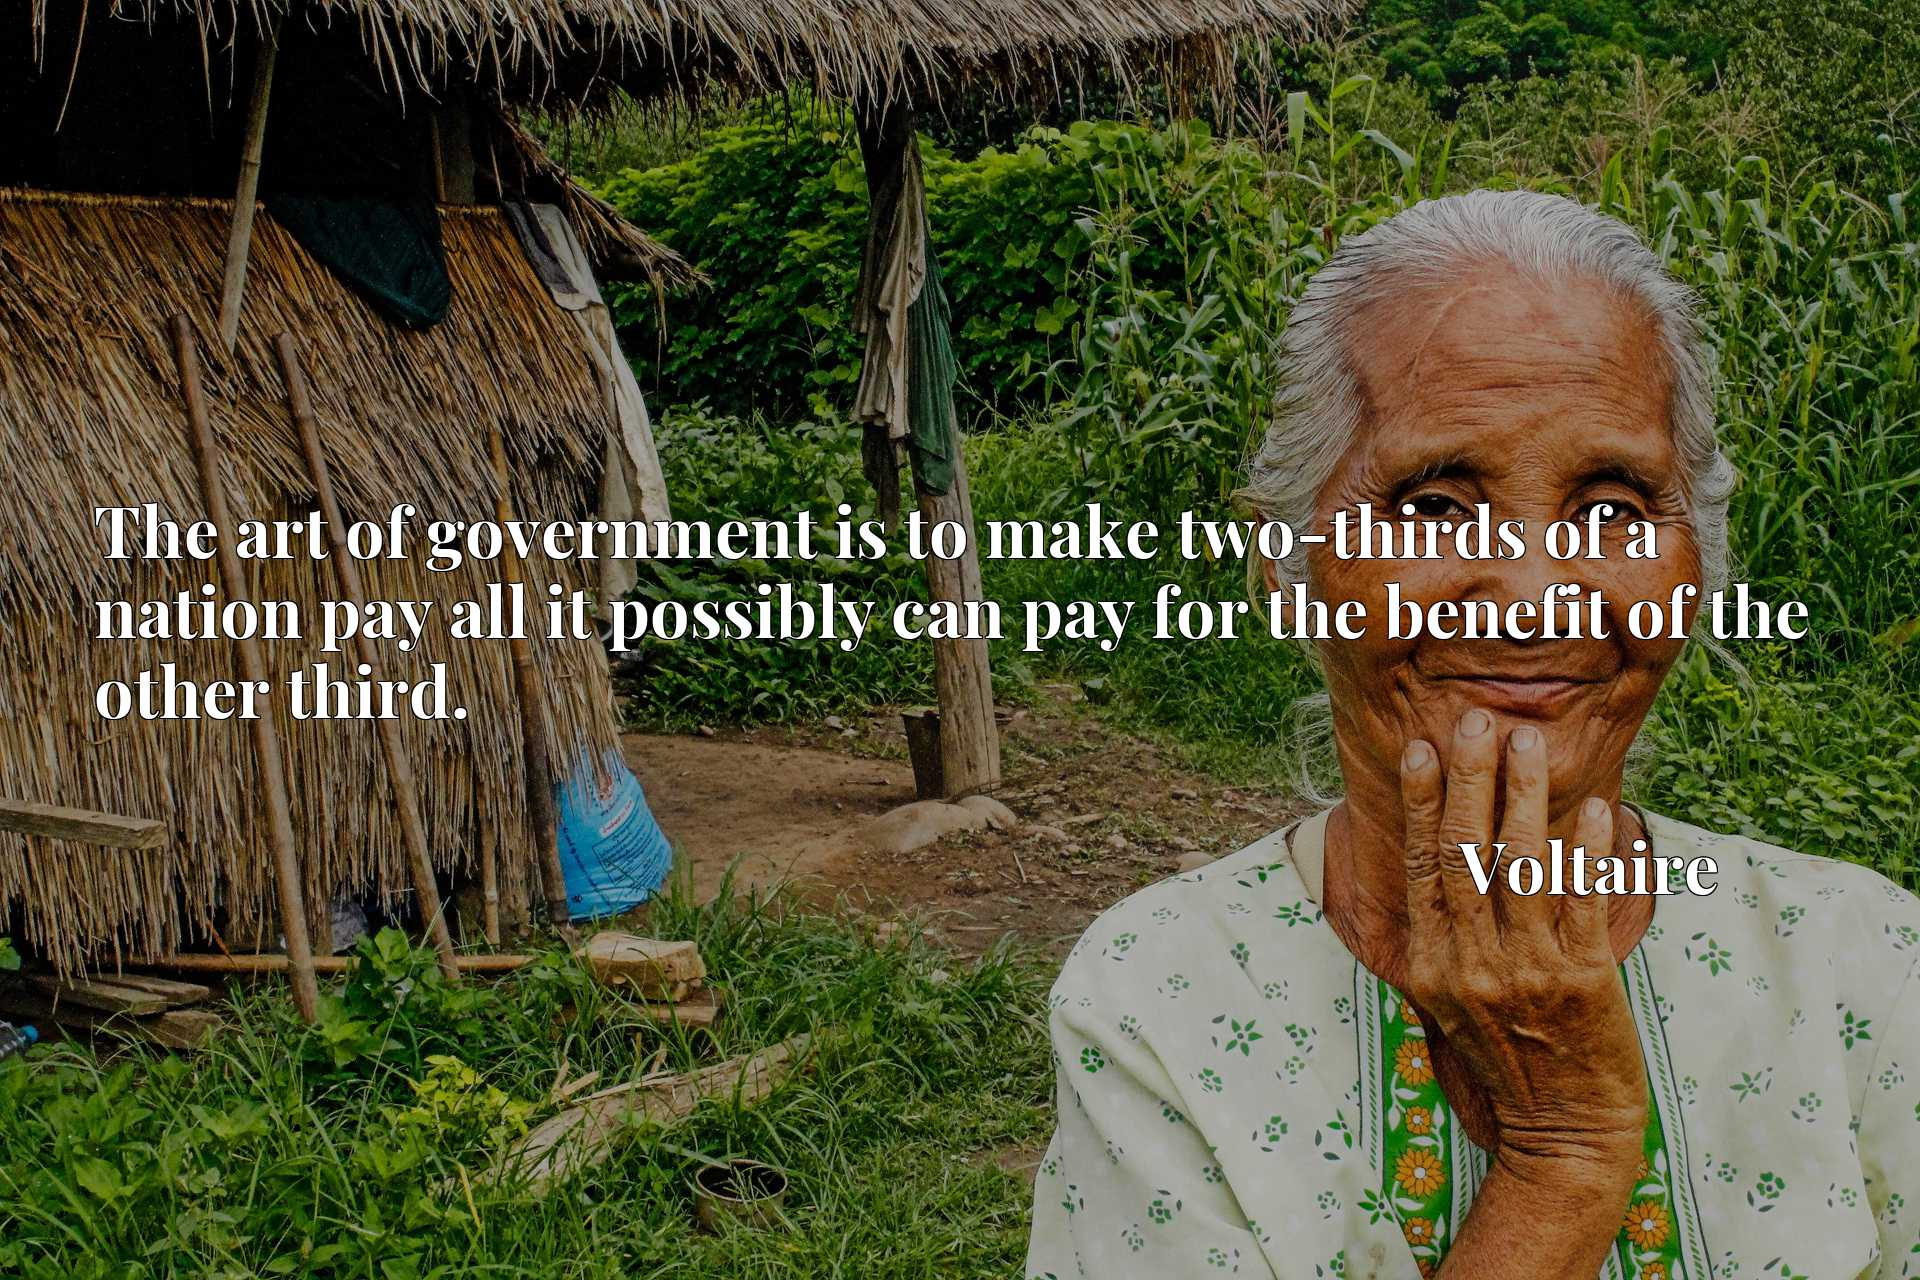 The art of government is to make two-thirds of a nation pay all it possibly can pay for the benefit of the other third.